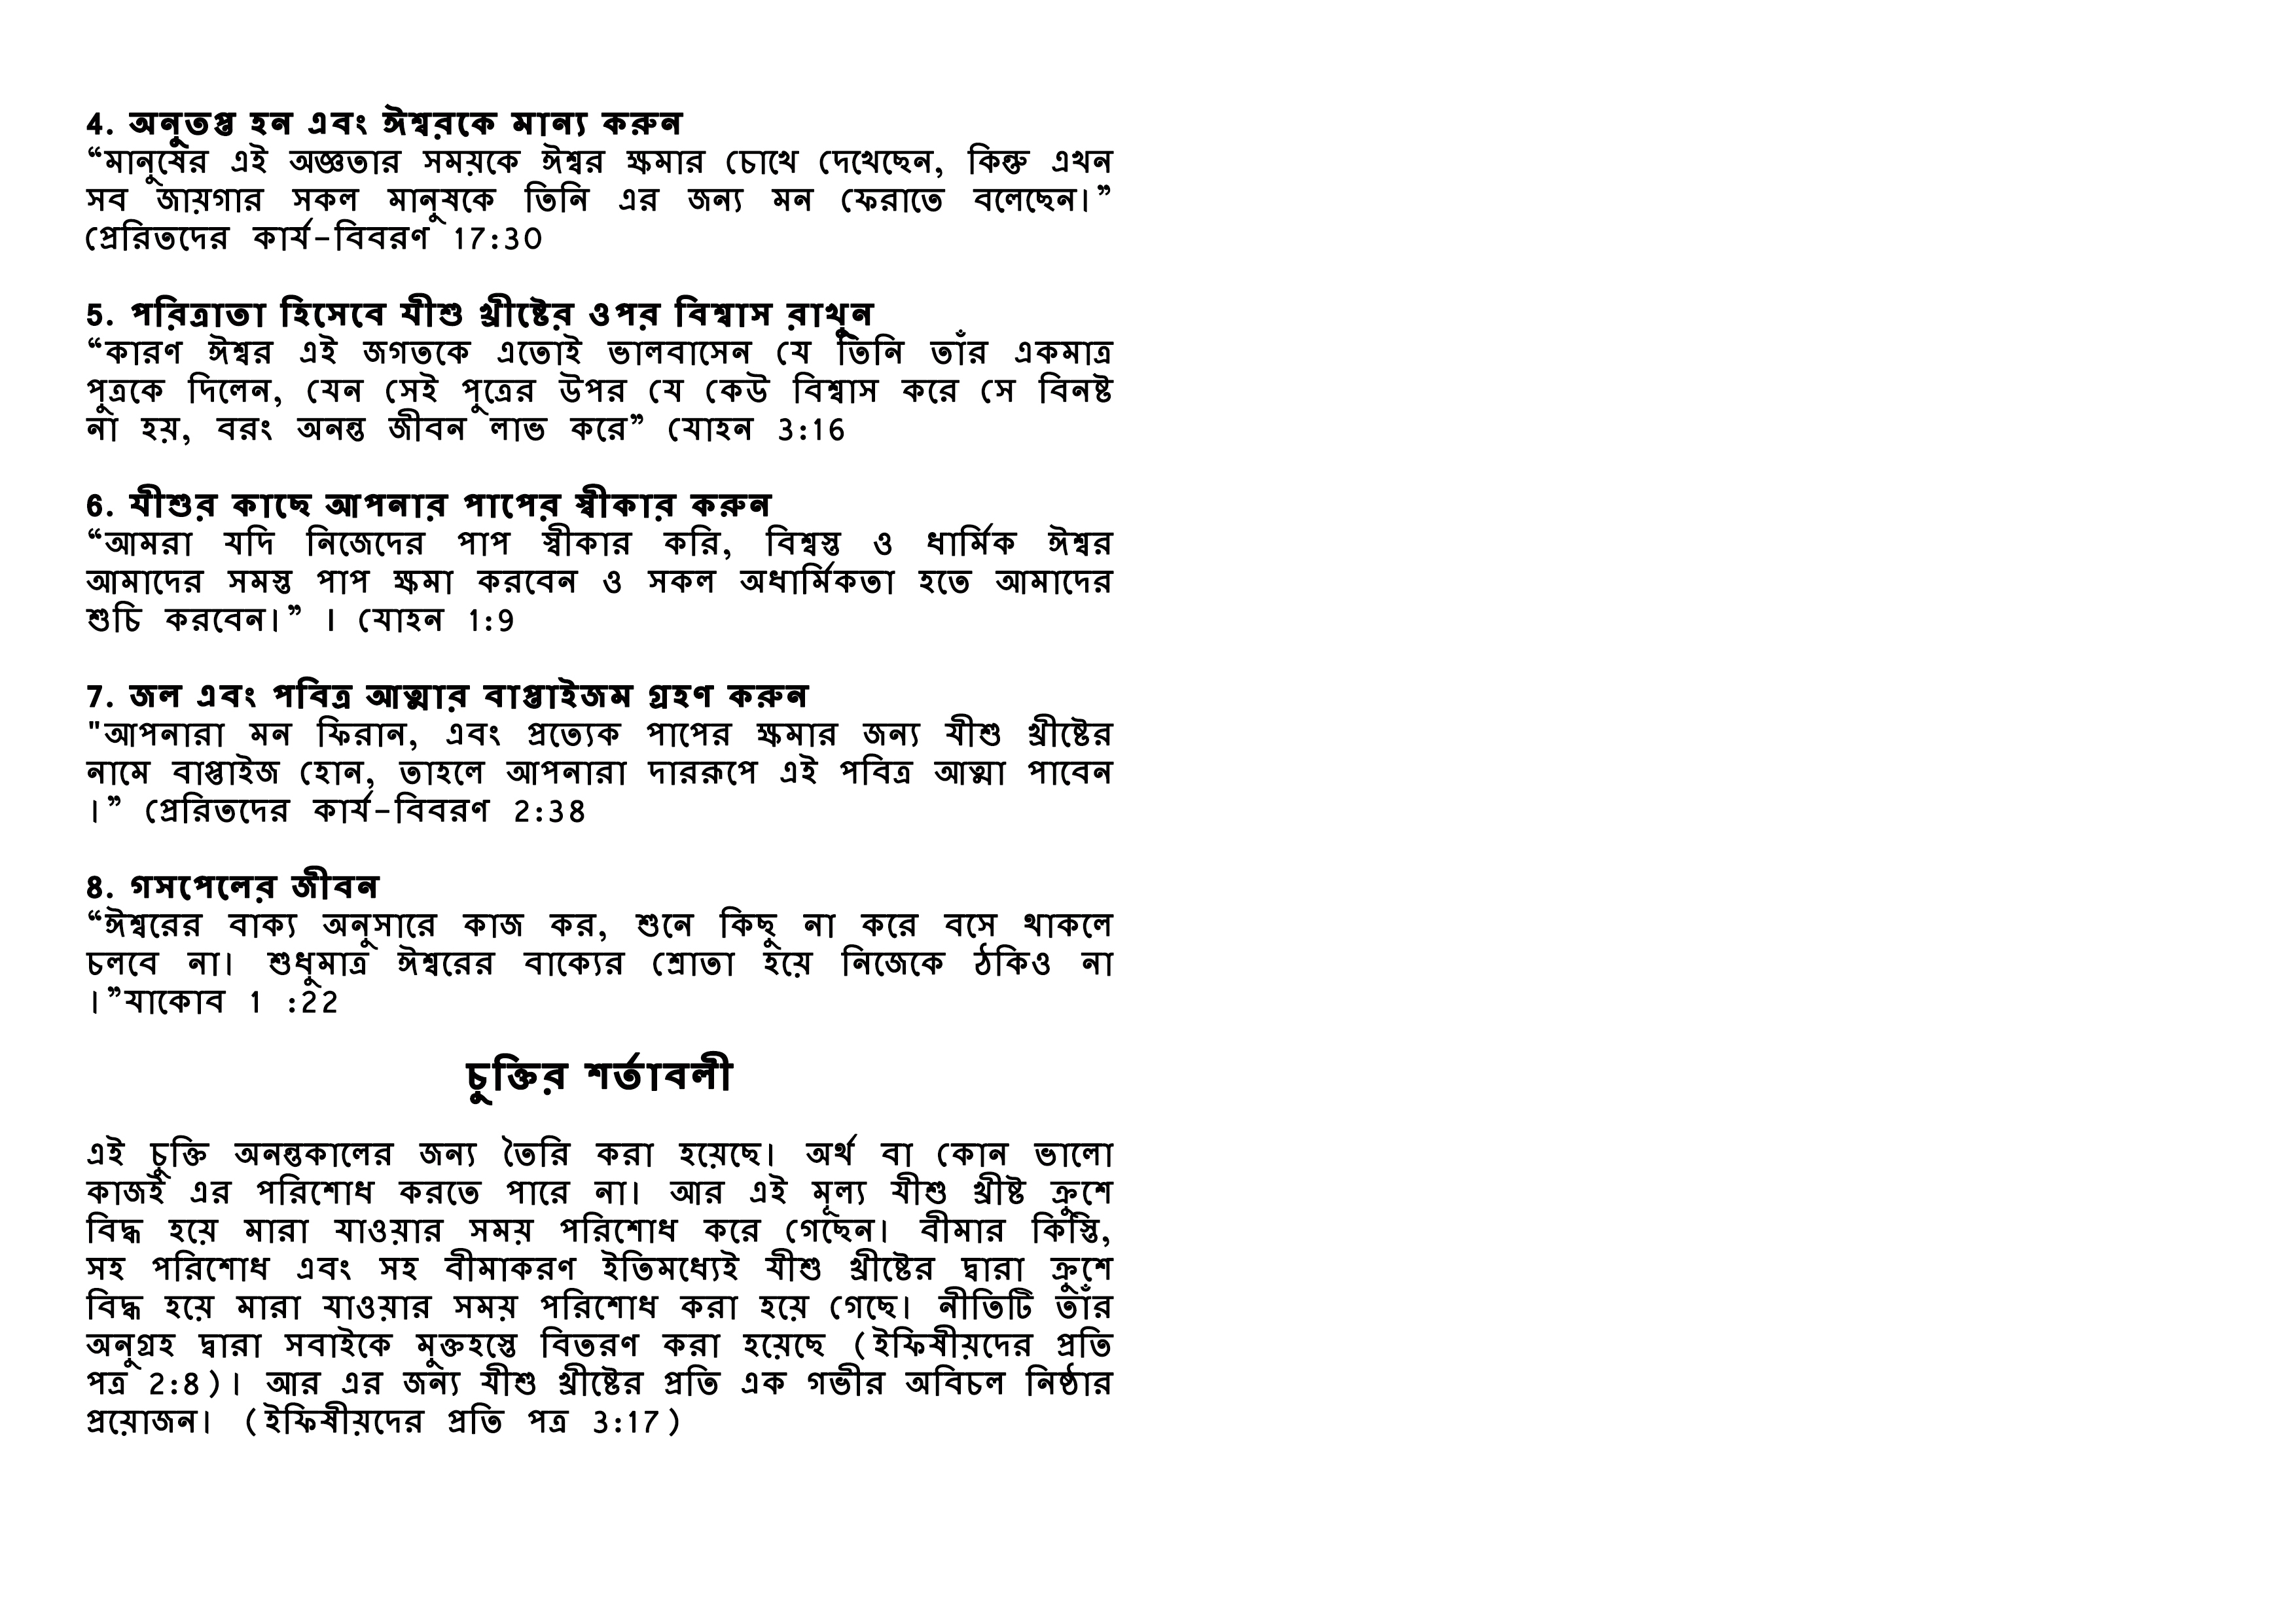 Free-all-Inclusive-insurance-policy_page2-bengali1